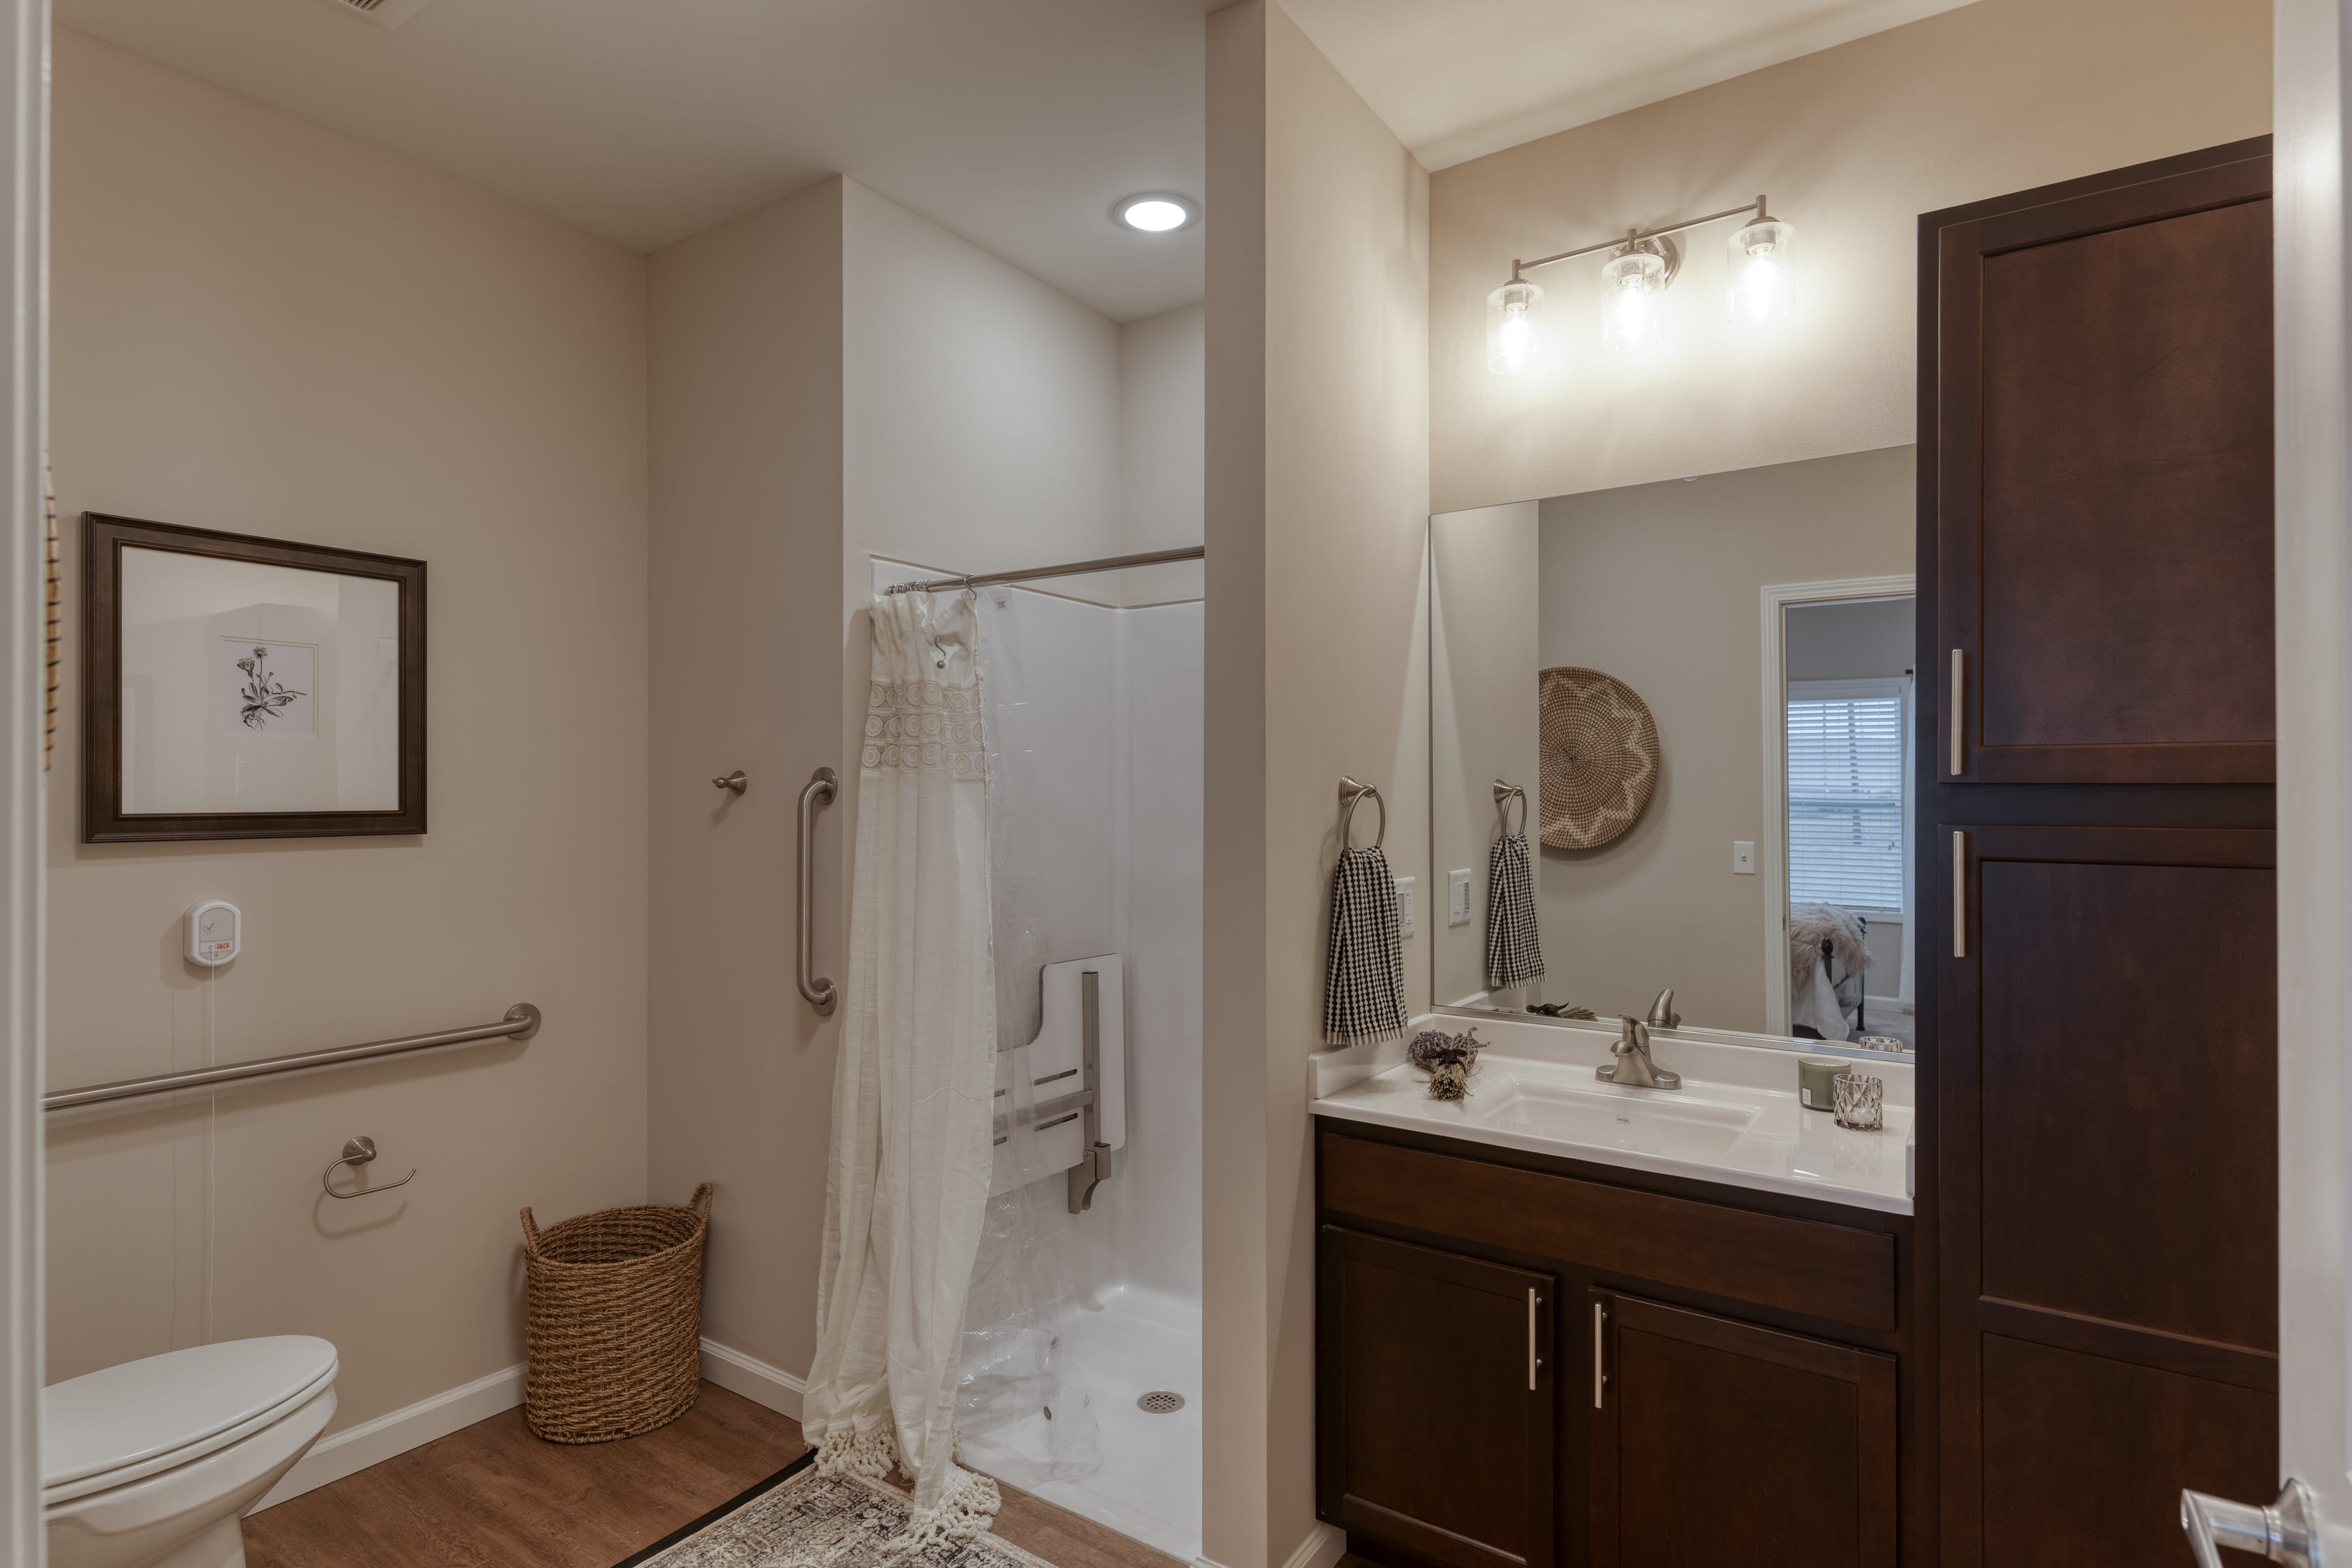 Private and accessible bathrooms include shower seats, railings, and other features